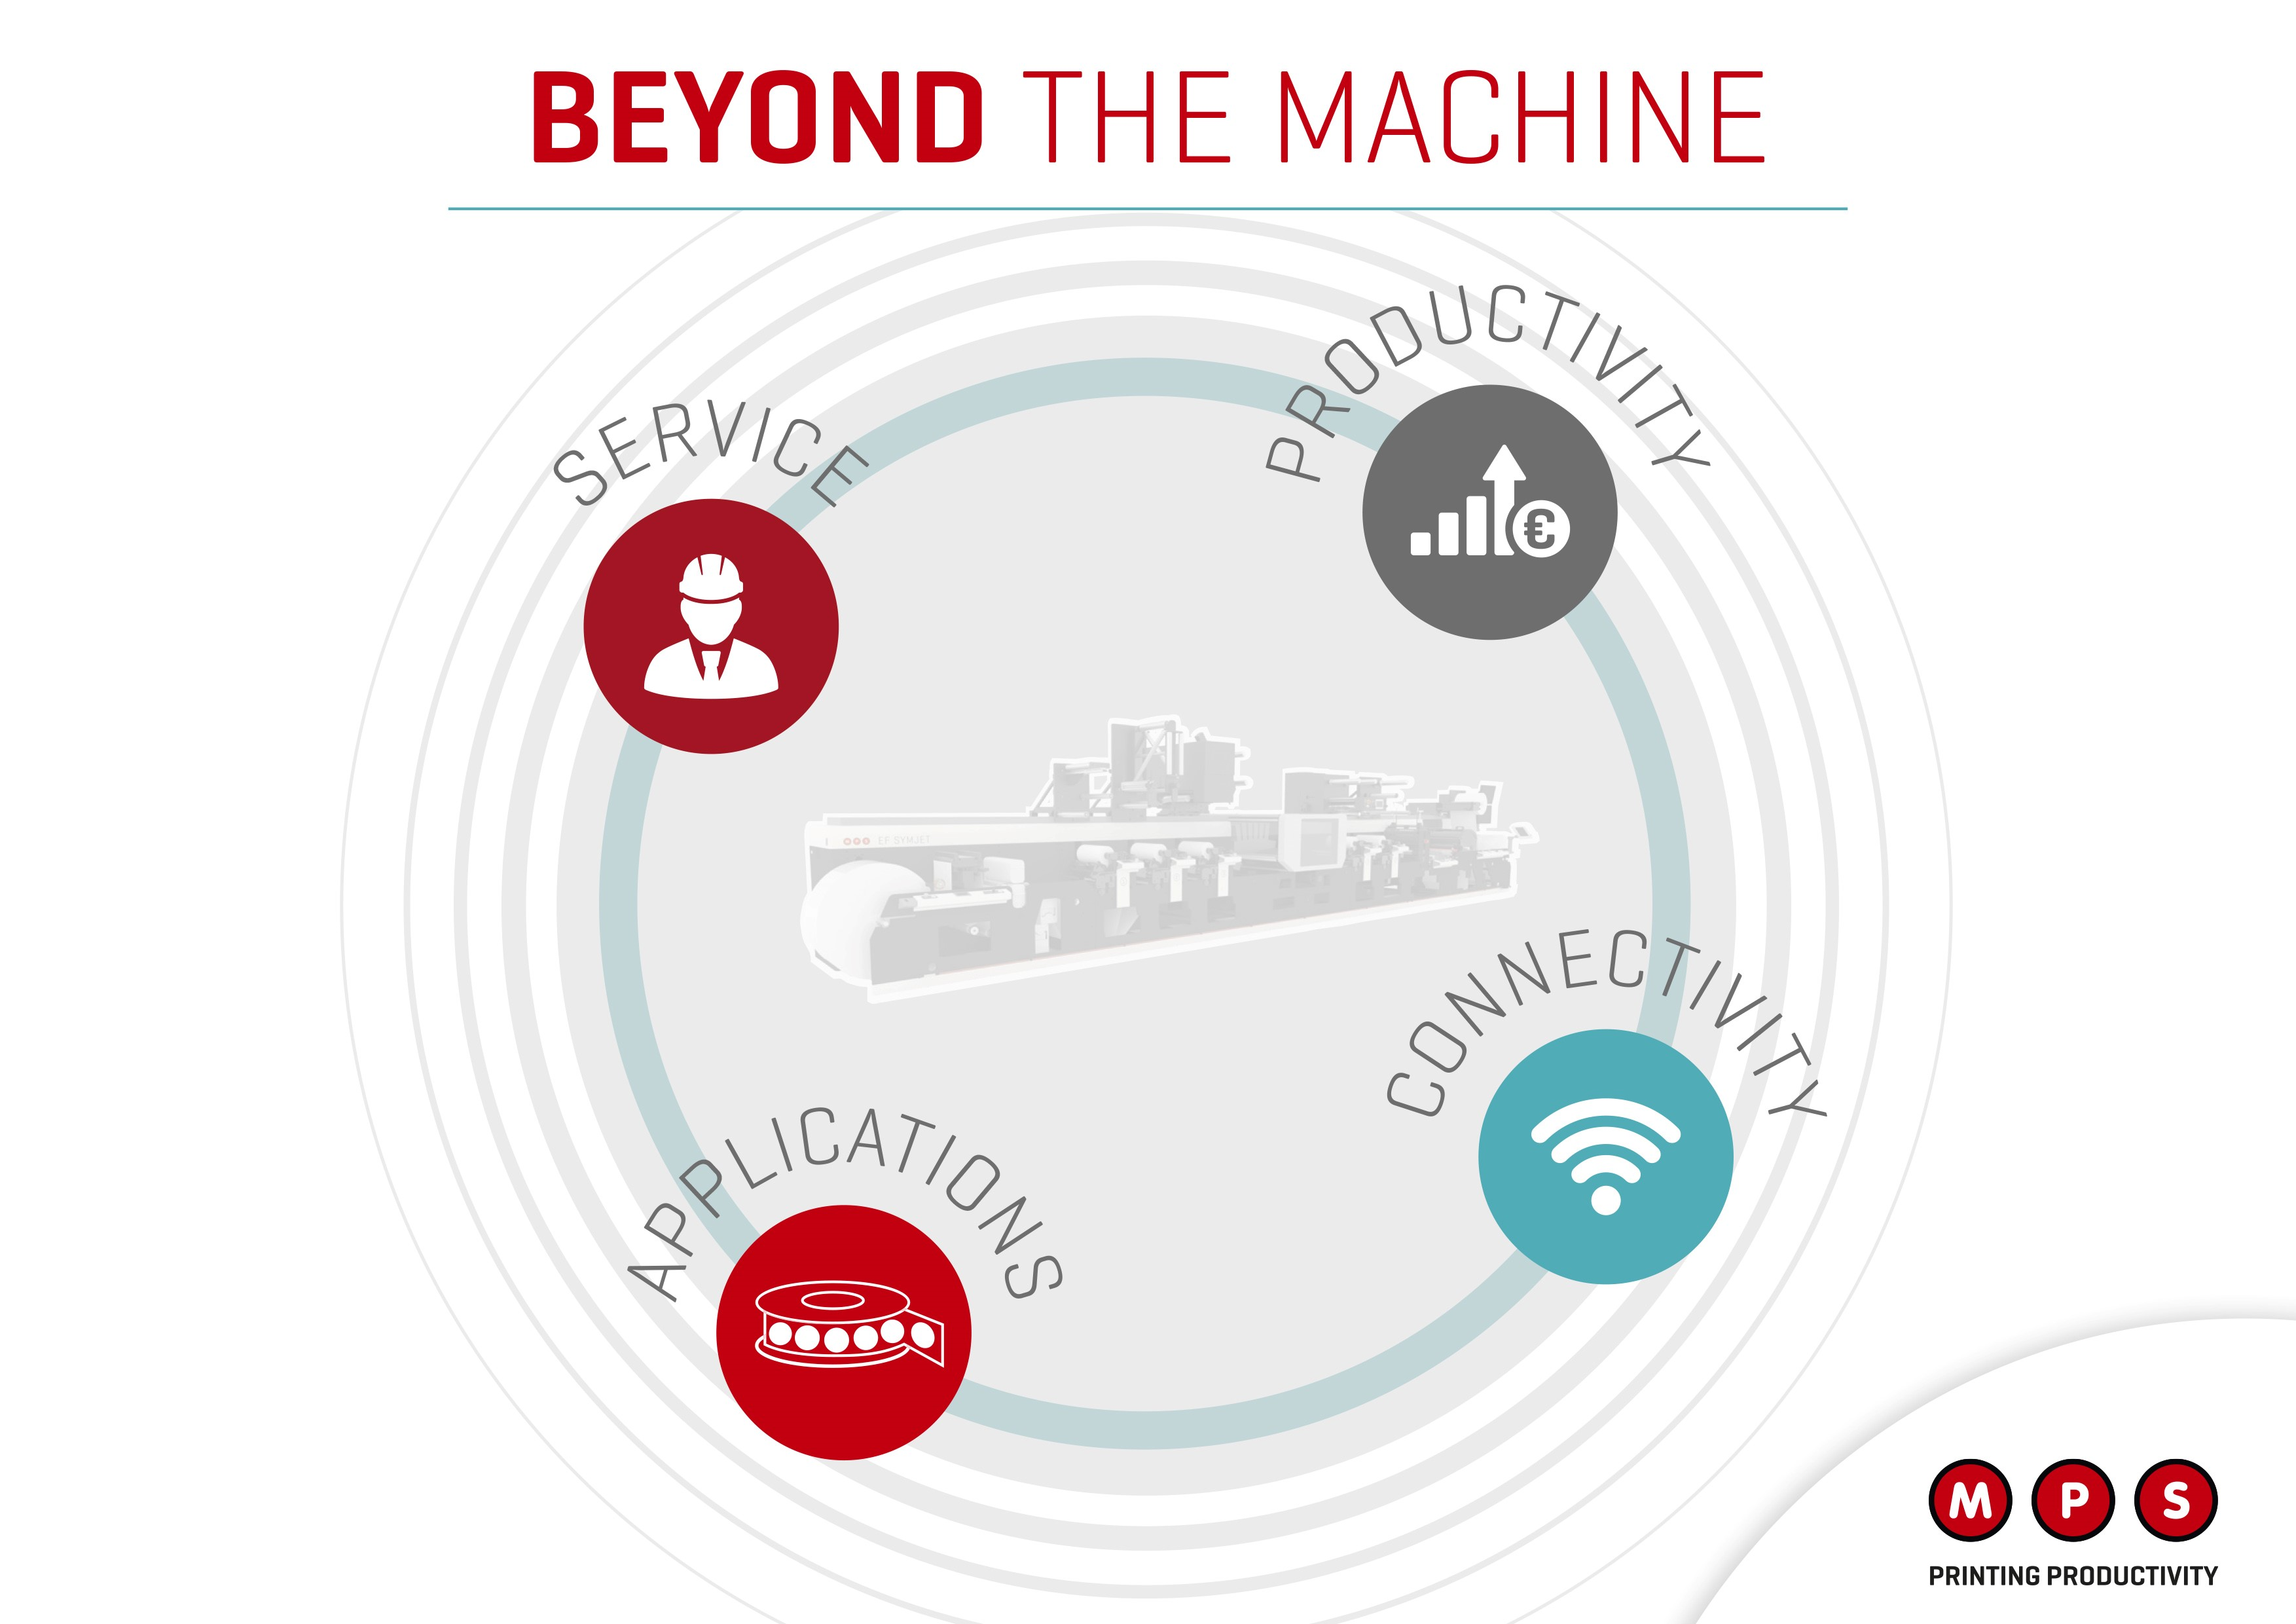 Beyond the Machine concept shows MPS' strengths in four key processes – Connectivity, Applications, Productivity and Service